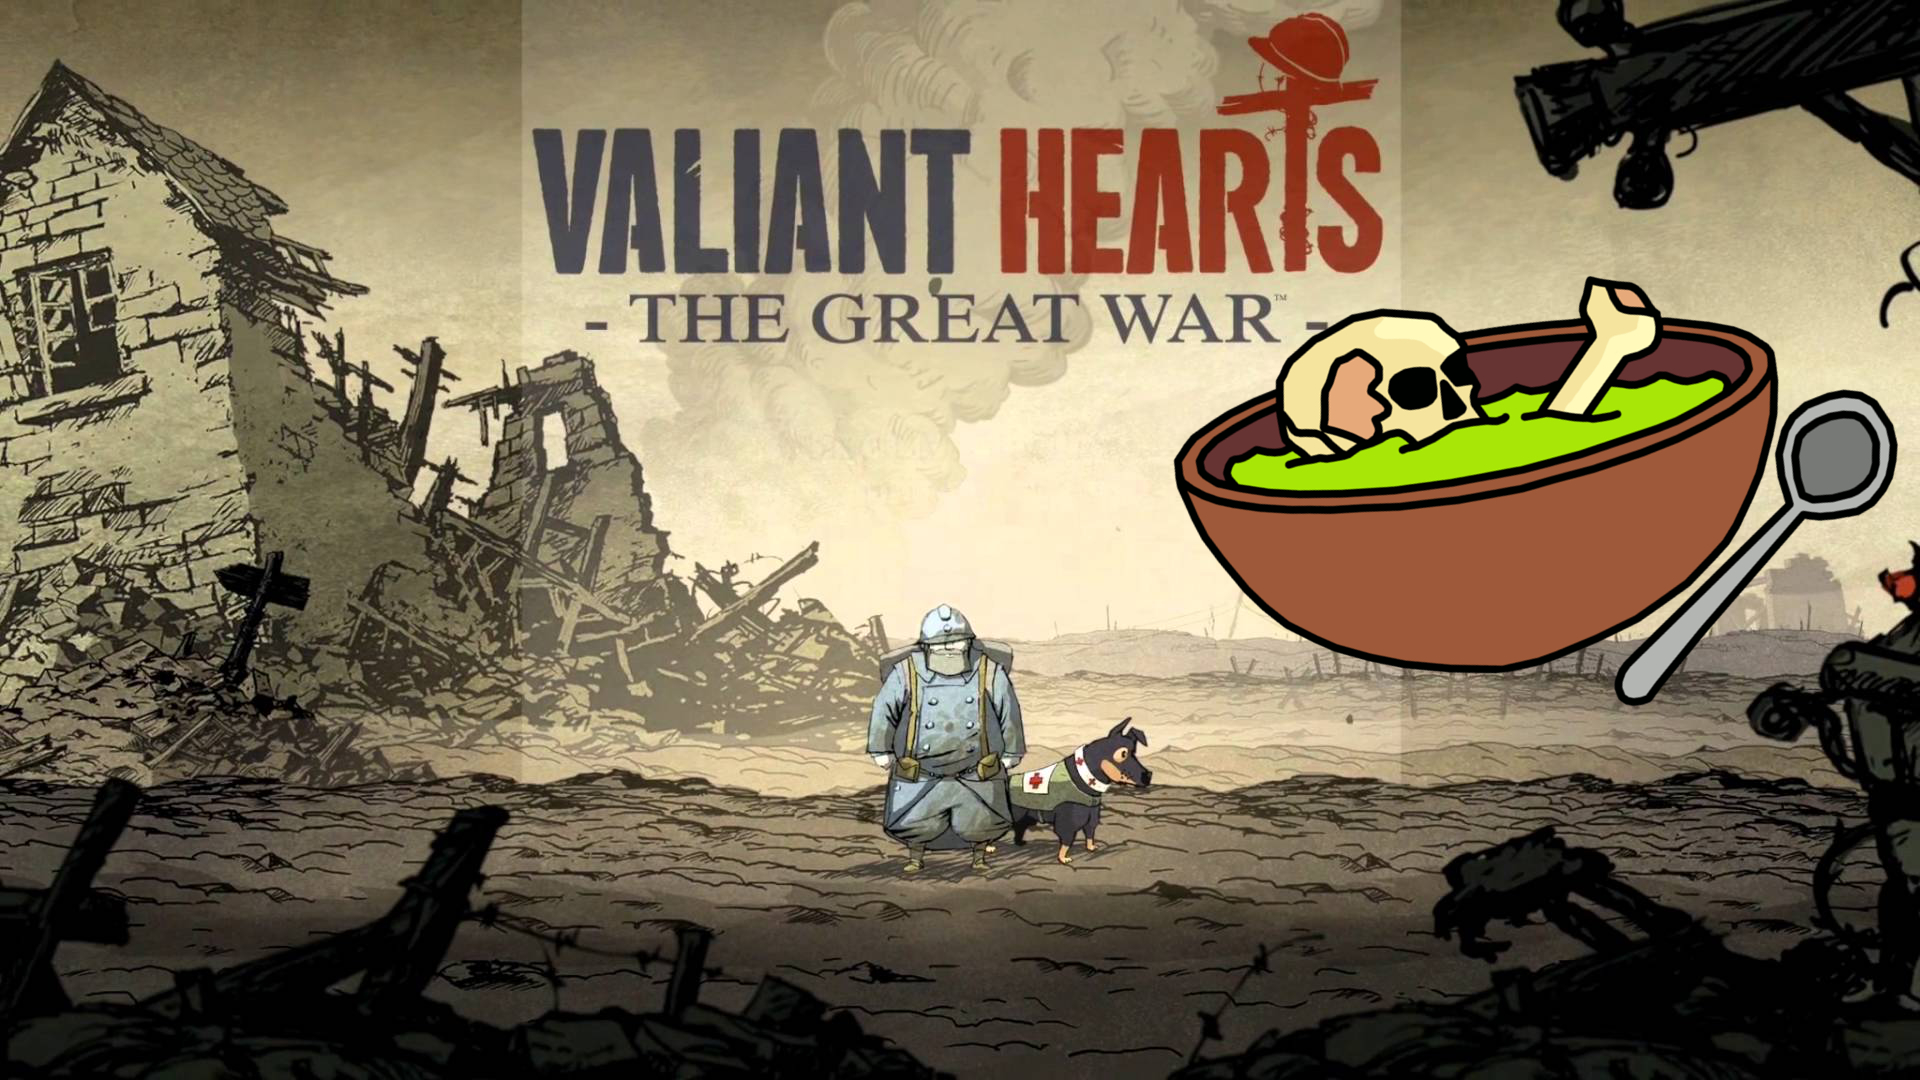 Valiant Hearts: WWI Learning on the xBox!